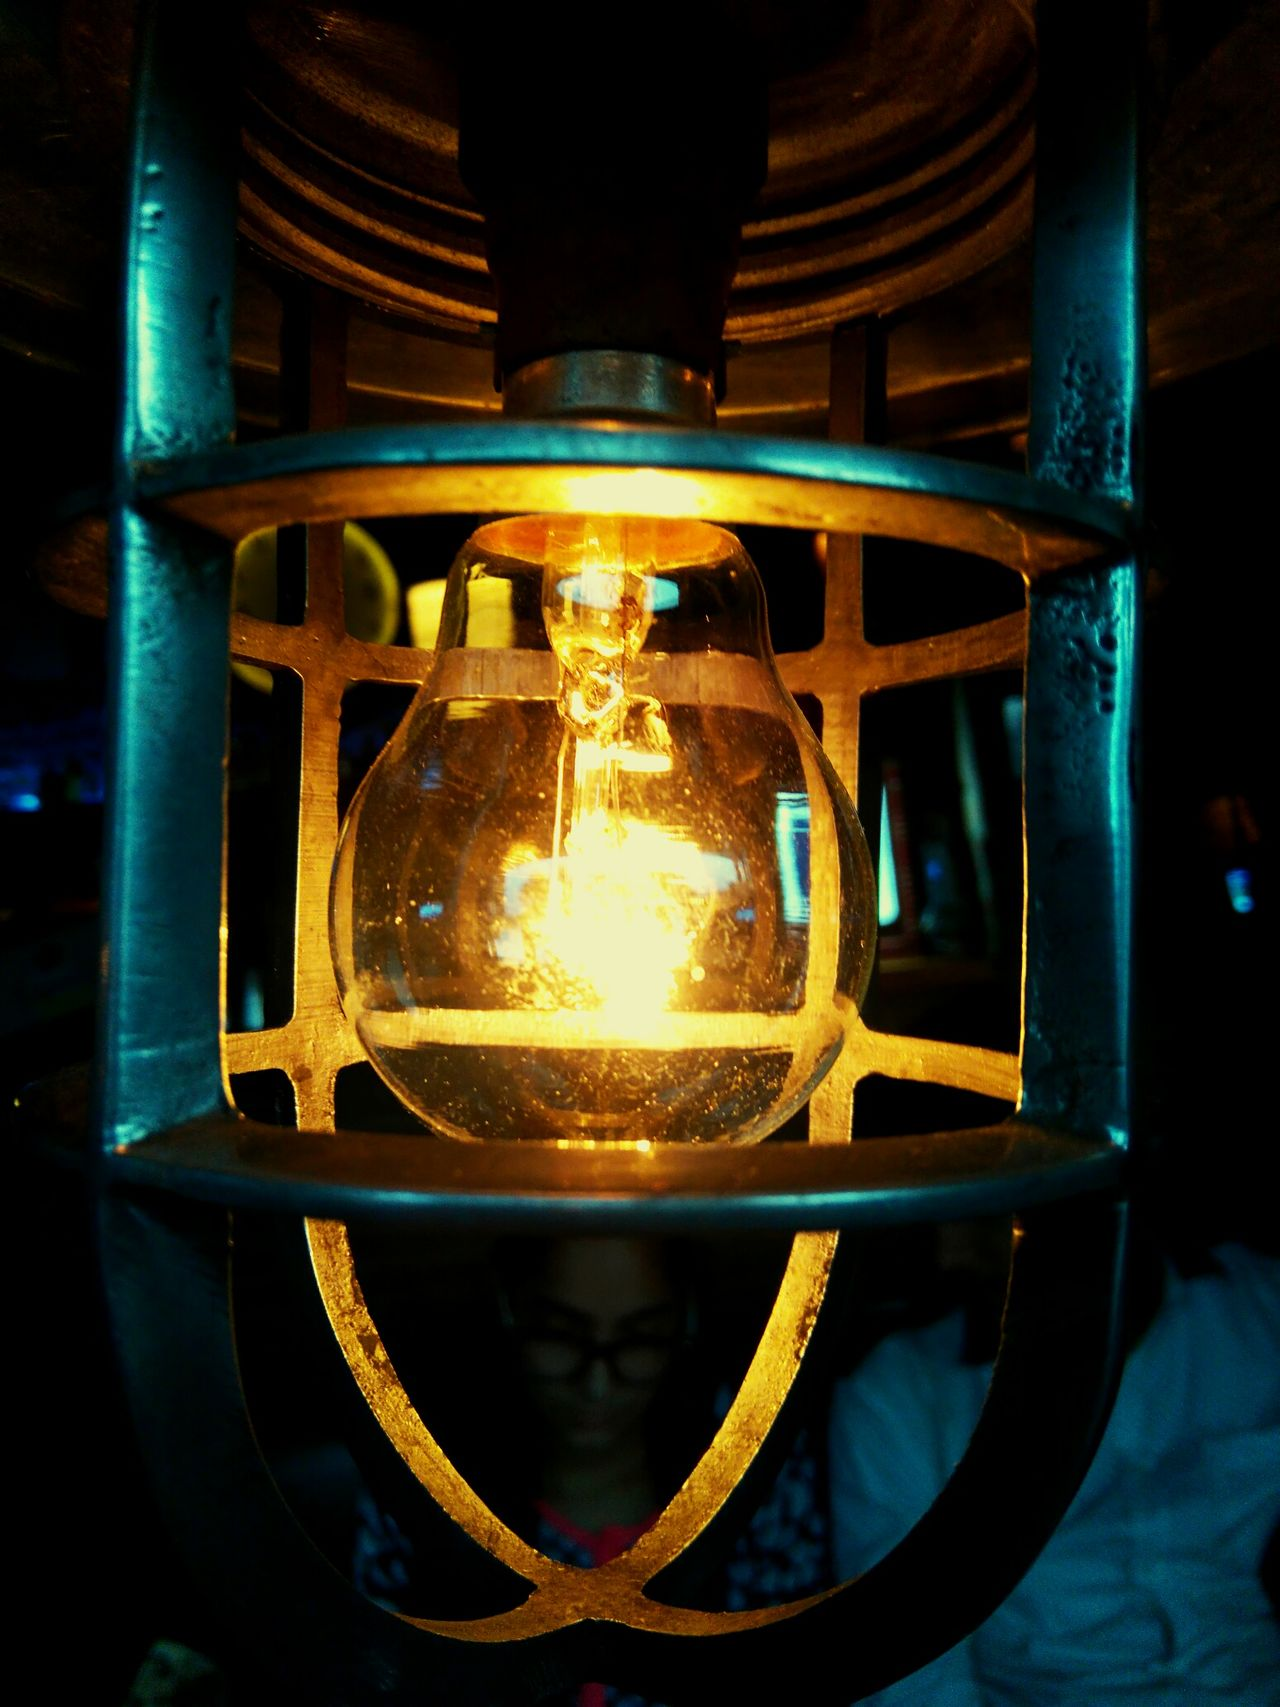 Illuminated Electricity  Lighting Equipment Close-up Indoors  Light Bulb Old-fashioned Lit Electric Light No People CreativePhotographer Yellow Mobilephotography Focus On Foreground Sophisticated Social Restaurant Hauzkhasvillage Illuminated Electricity  Lighting Equipment Close-up Indoors  Light Bulb